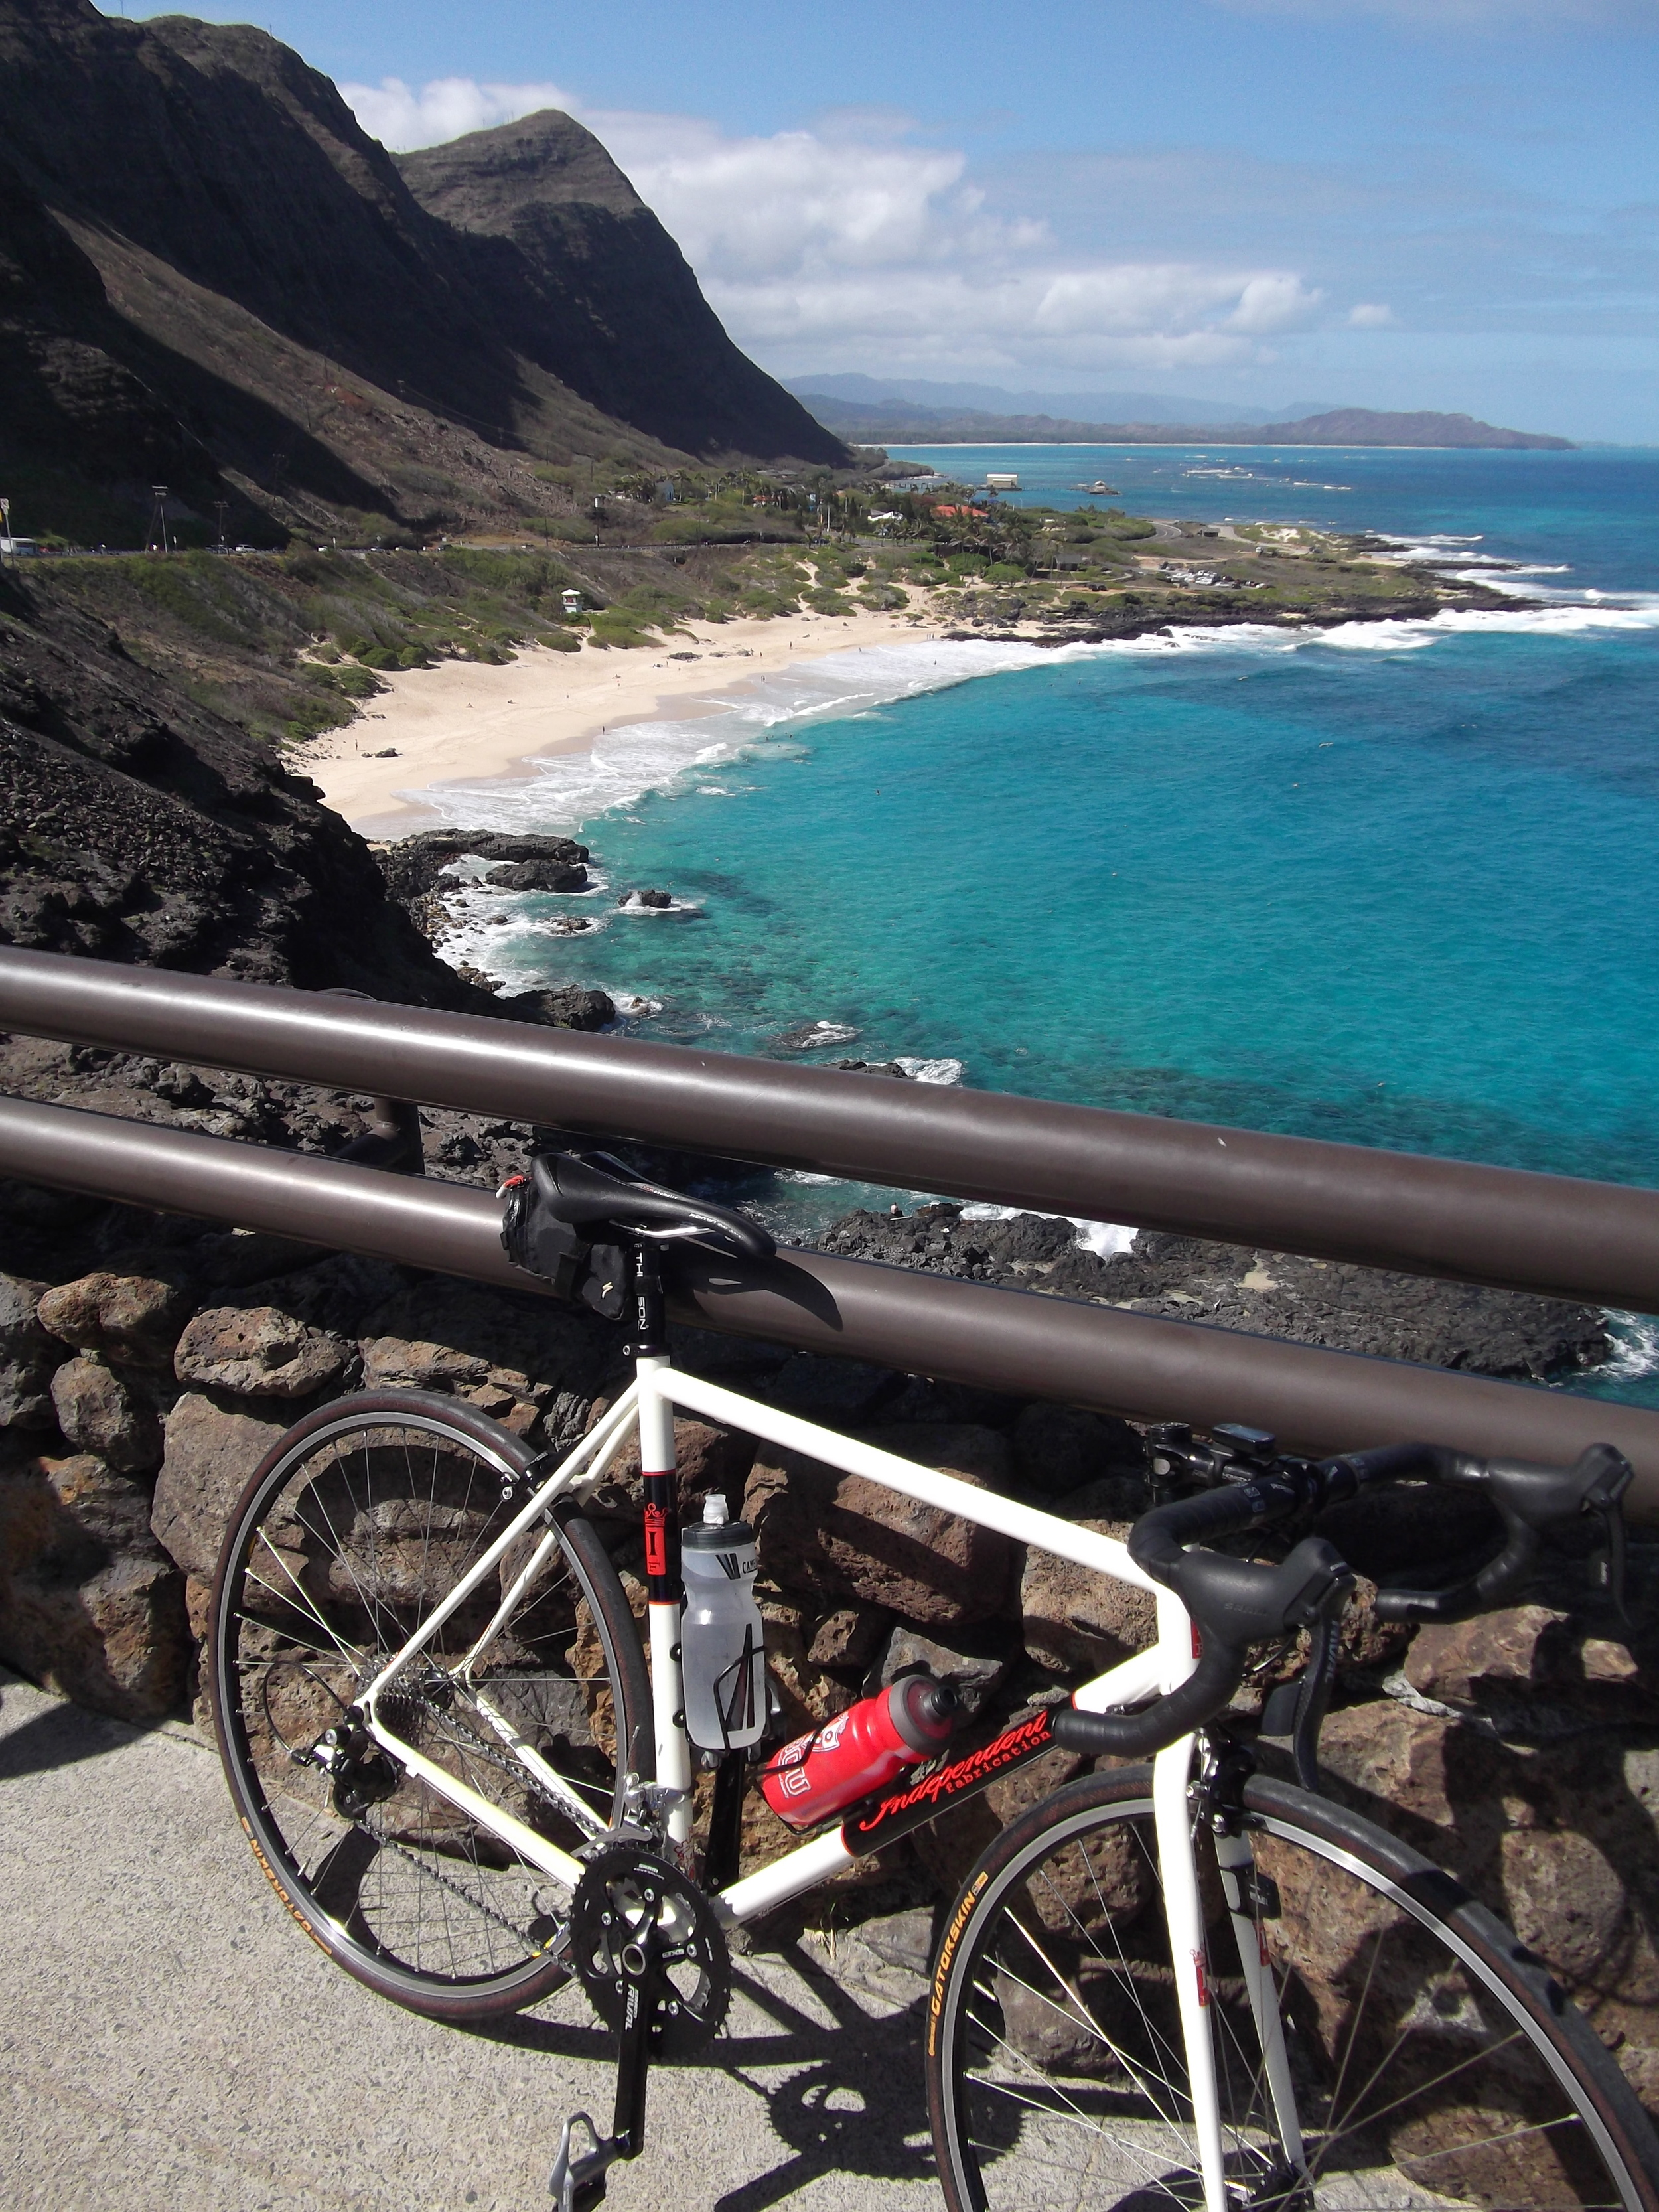 Another pic of a bike leaning against something...... but the scenery isn't too shabby in Hawaii. (Oahu)